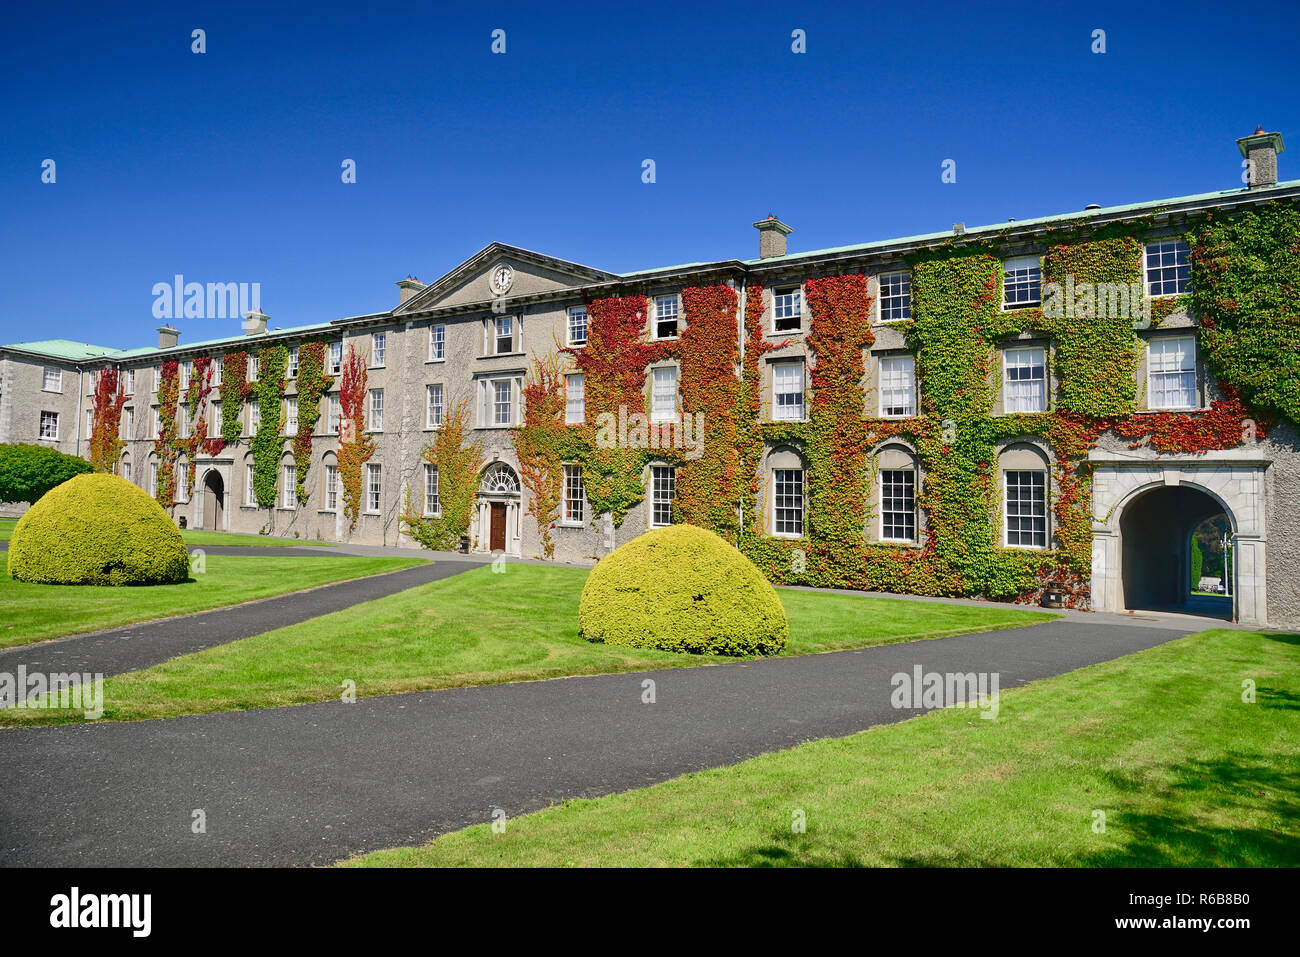 Ireland, County Kildare, Maynooth, St Patricks College, Ivy covered section of the college known as Stoyte House. - Stock Image